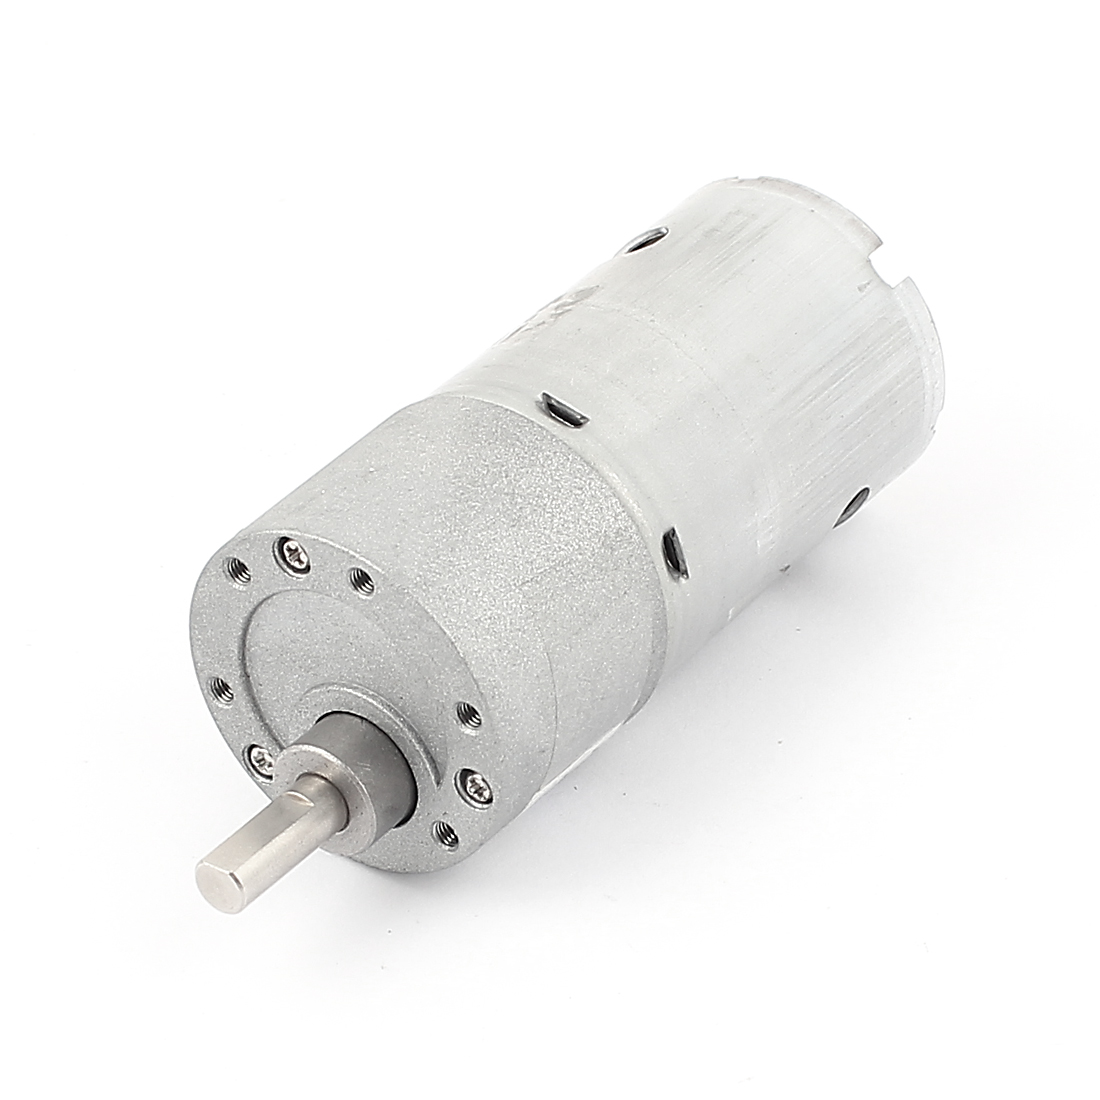 24V 80RPM Rotary Speed 6mm D Shaft 50mm Electric Micro DC Gearbox Gear Box Motor